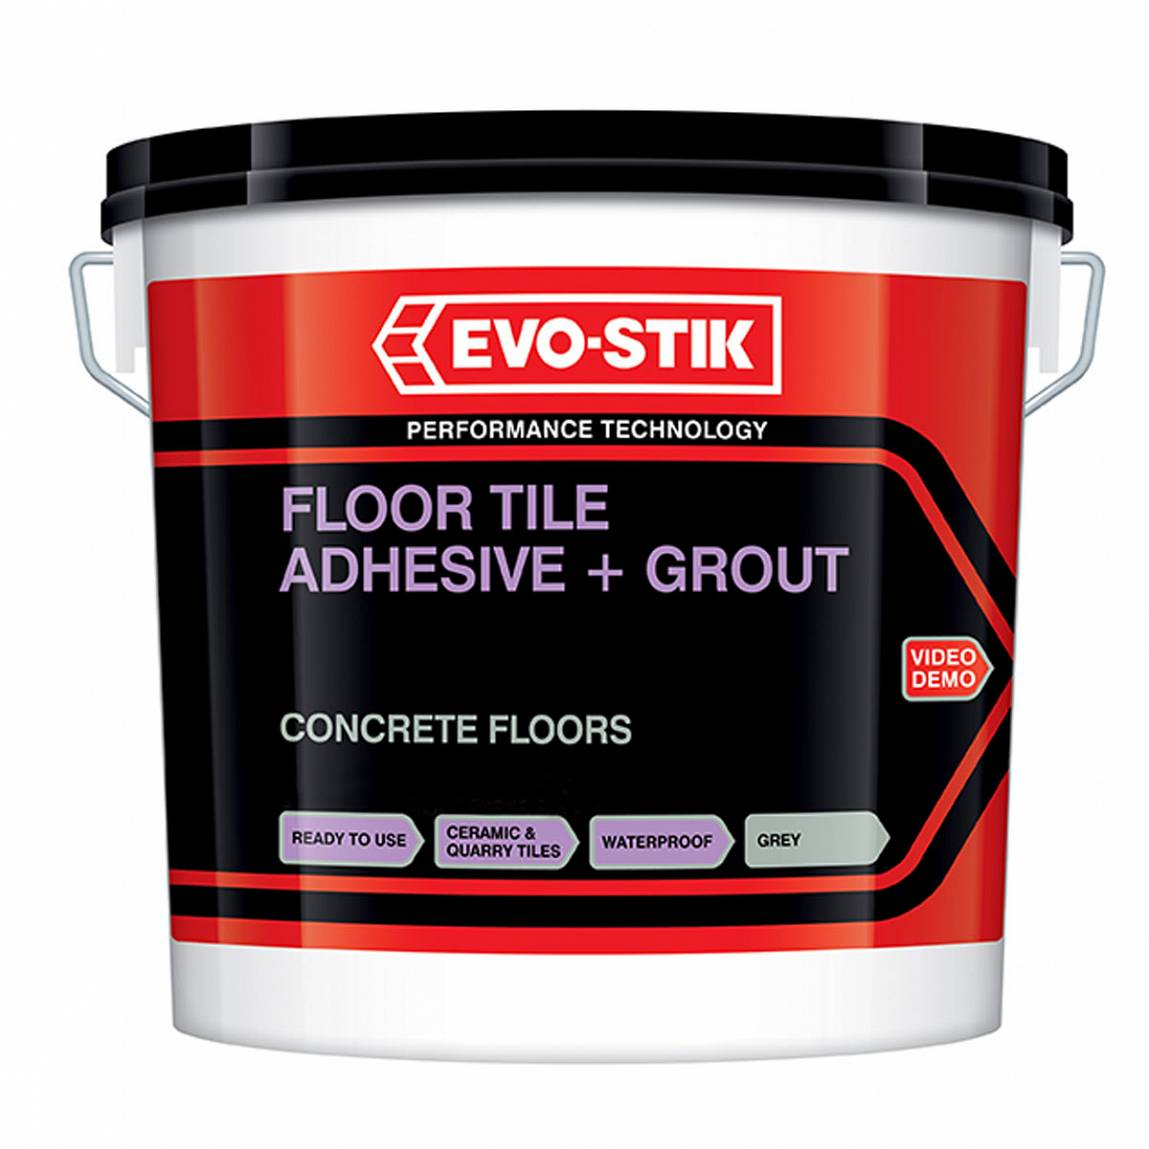 Bathroom Tile Adhesive And Grout: Concrete Floor Adhesive & Grout Large Grey 5L